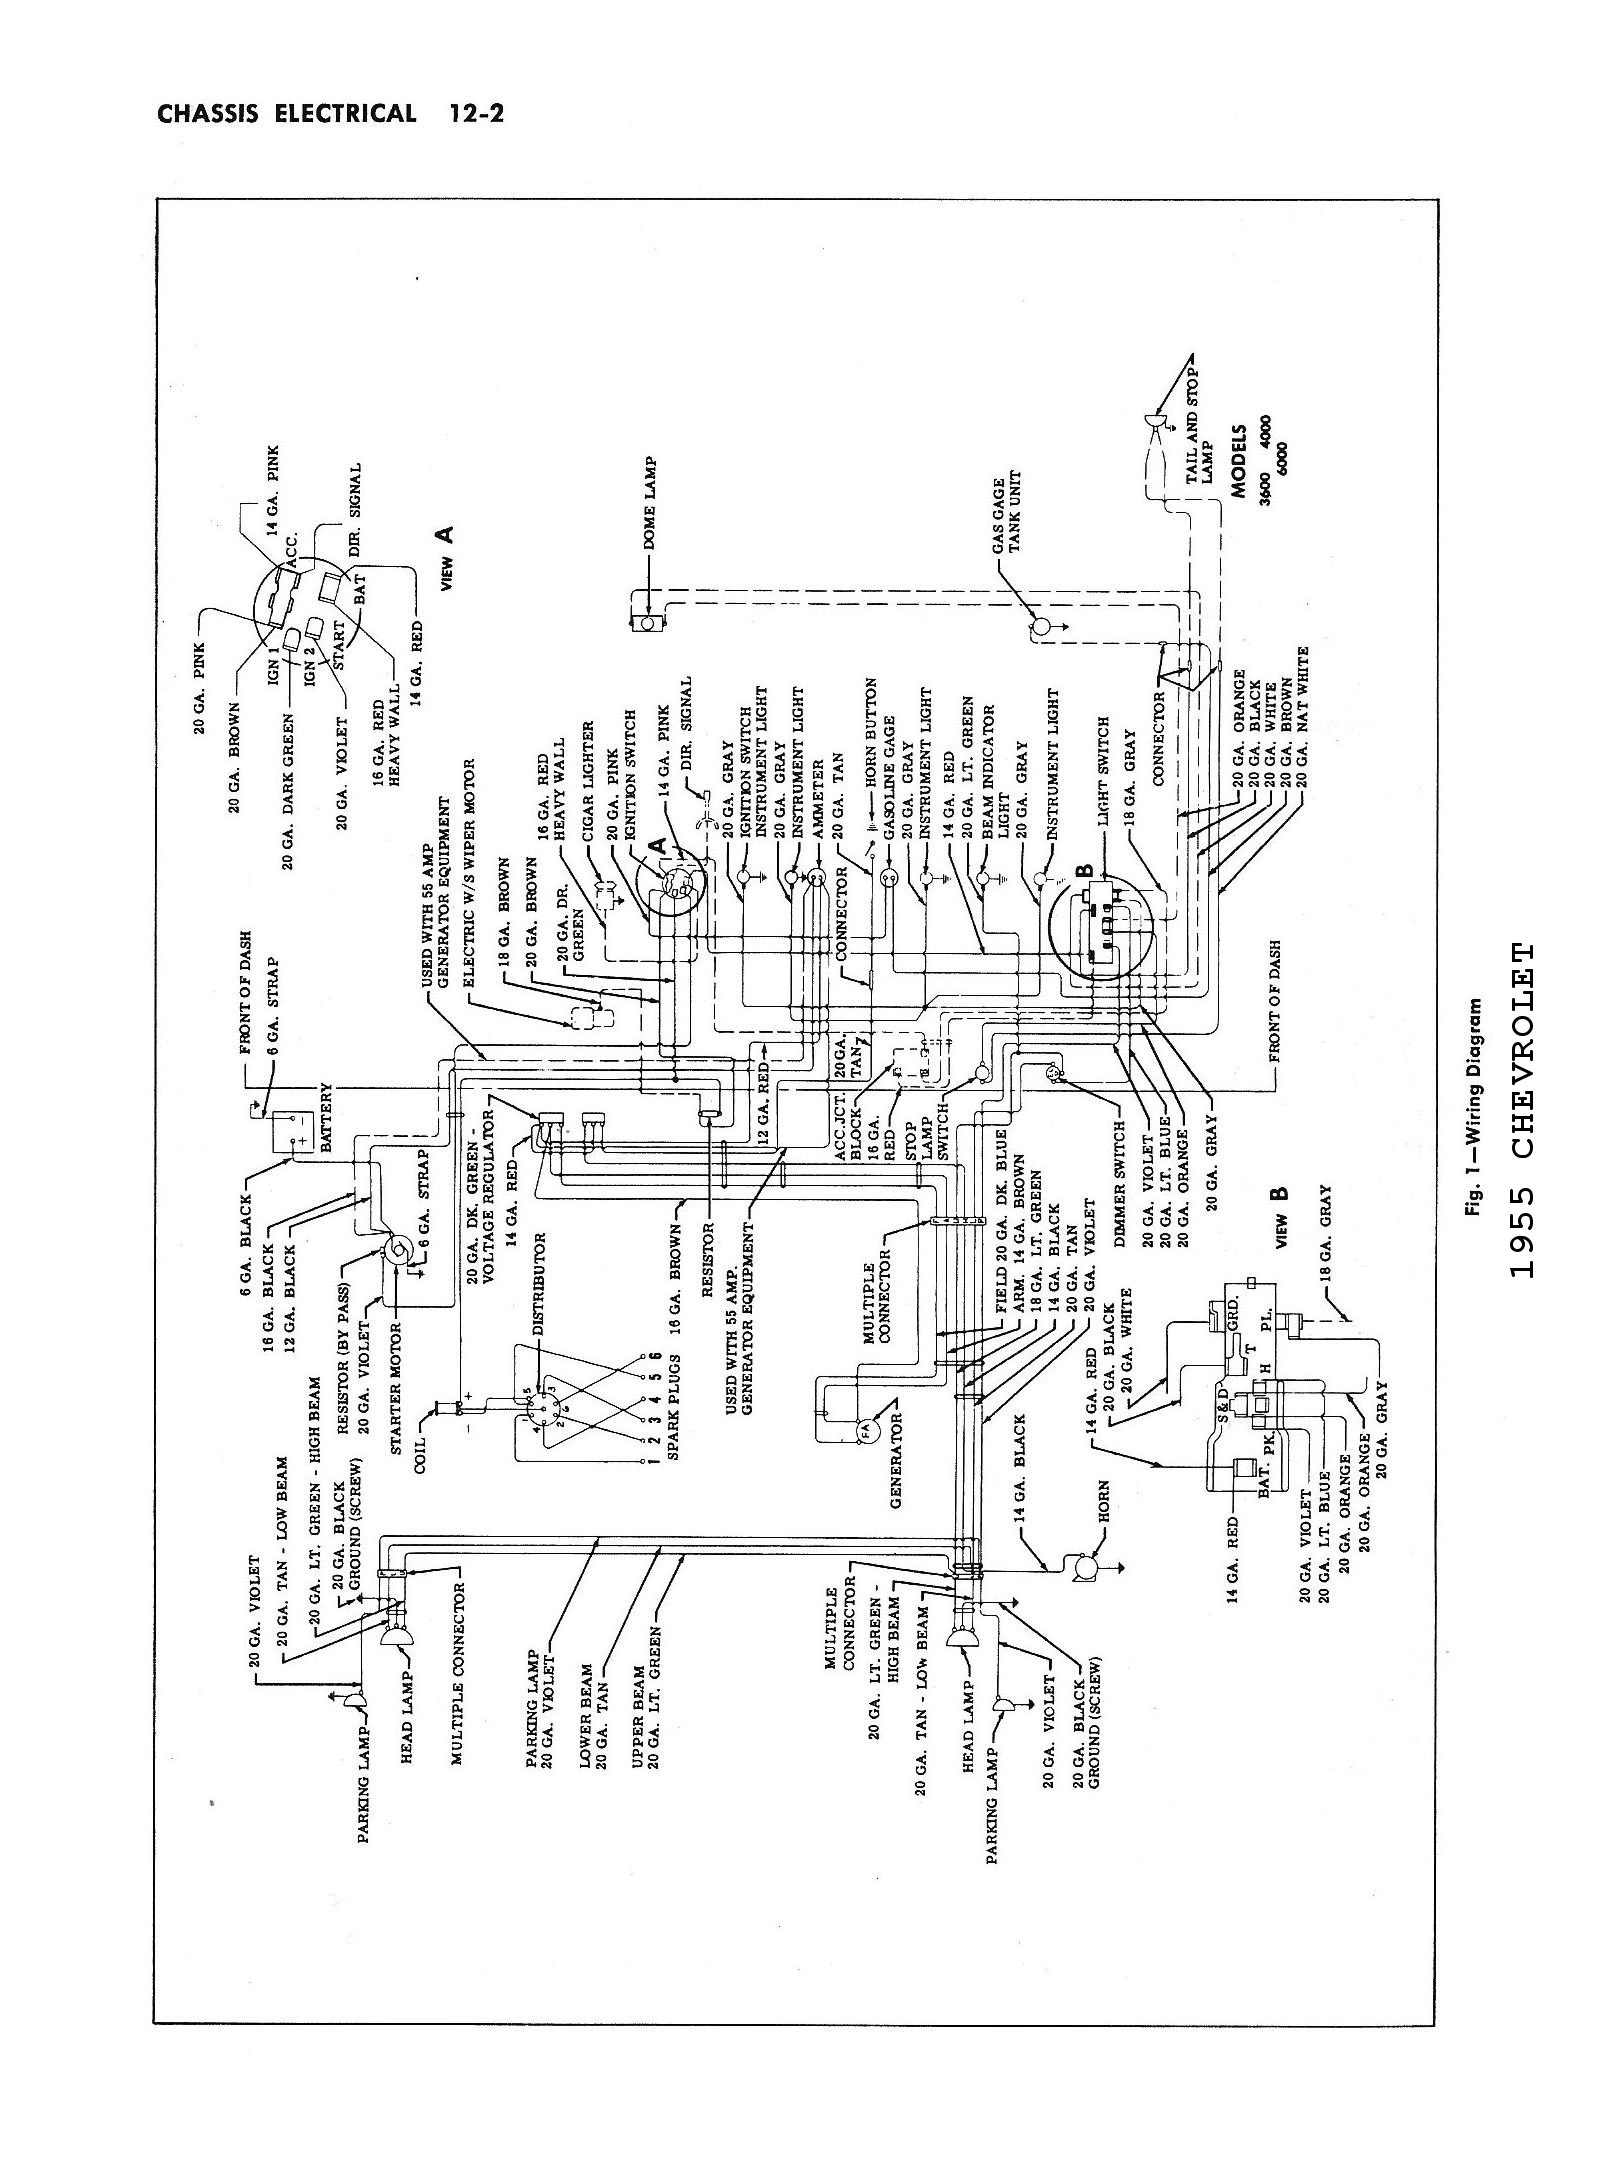 1947 Chevy Wiring Diagram Simple Diagrams Truck Opinions About U2022 1966